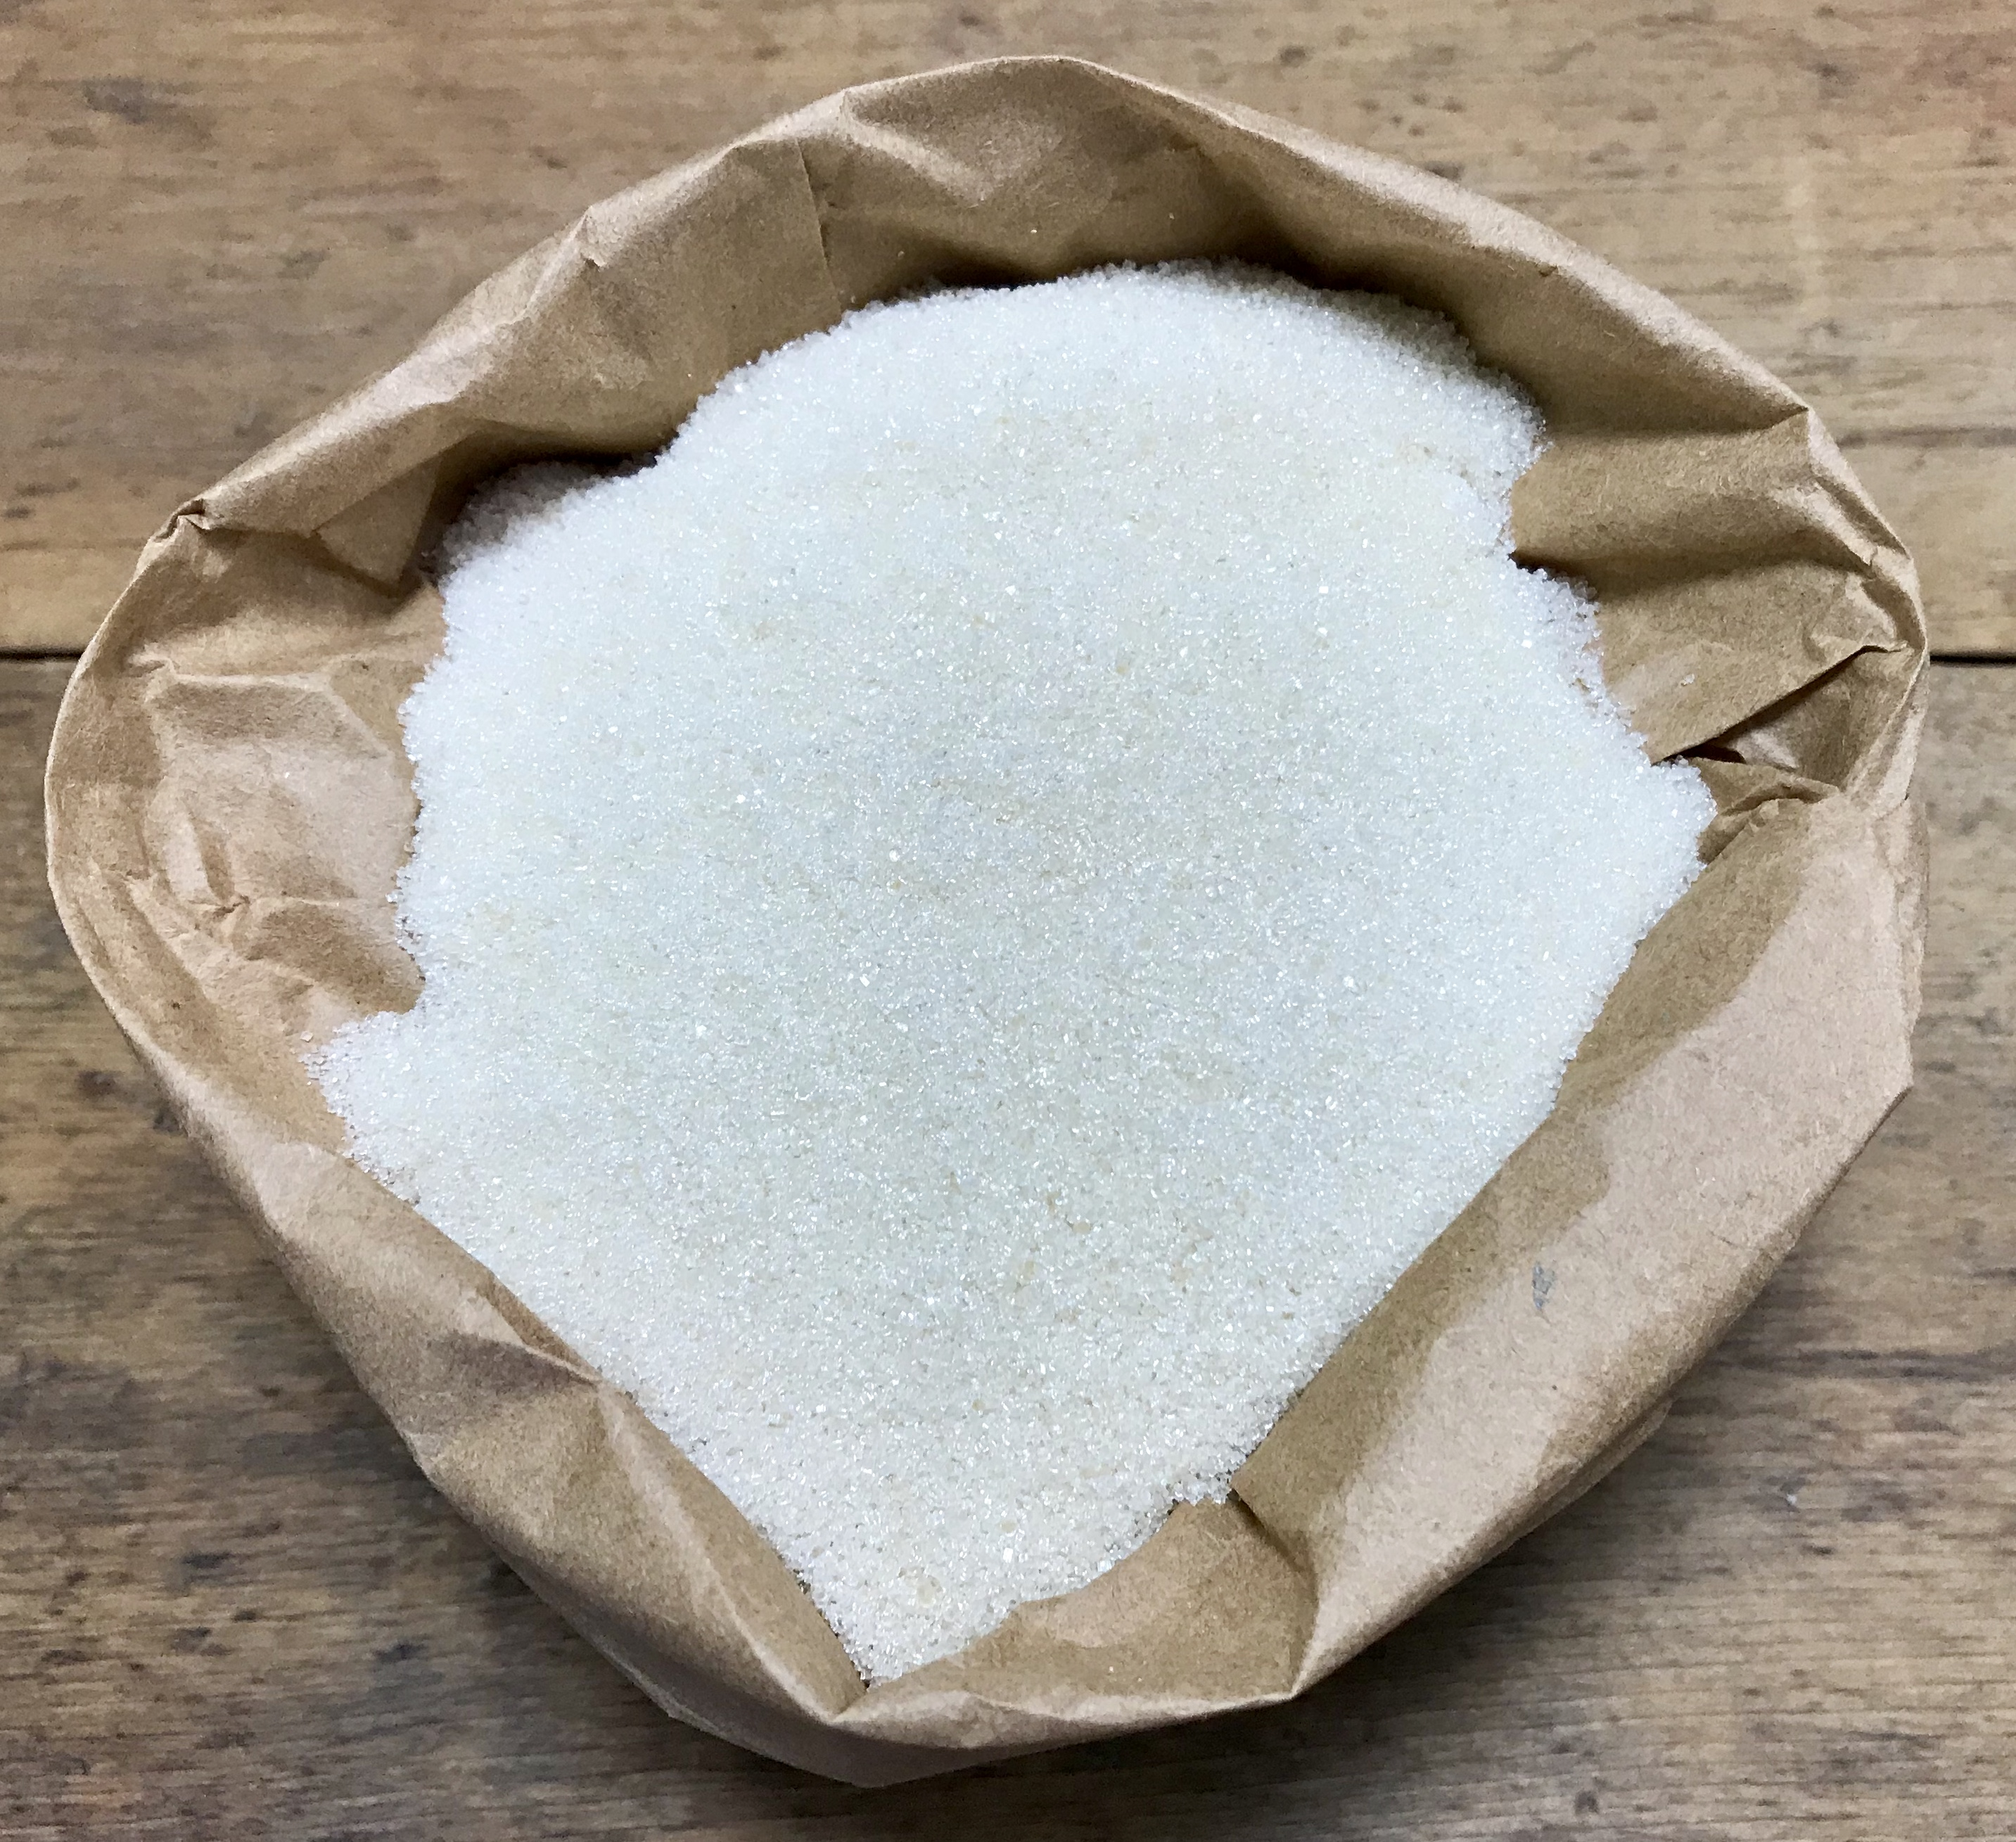 Organic Golden Caster Sugar